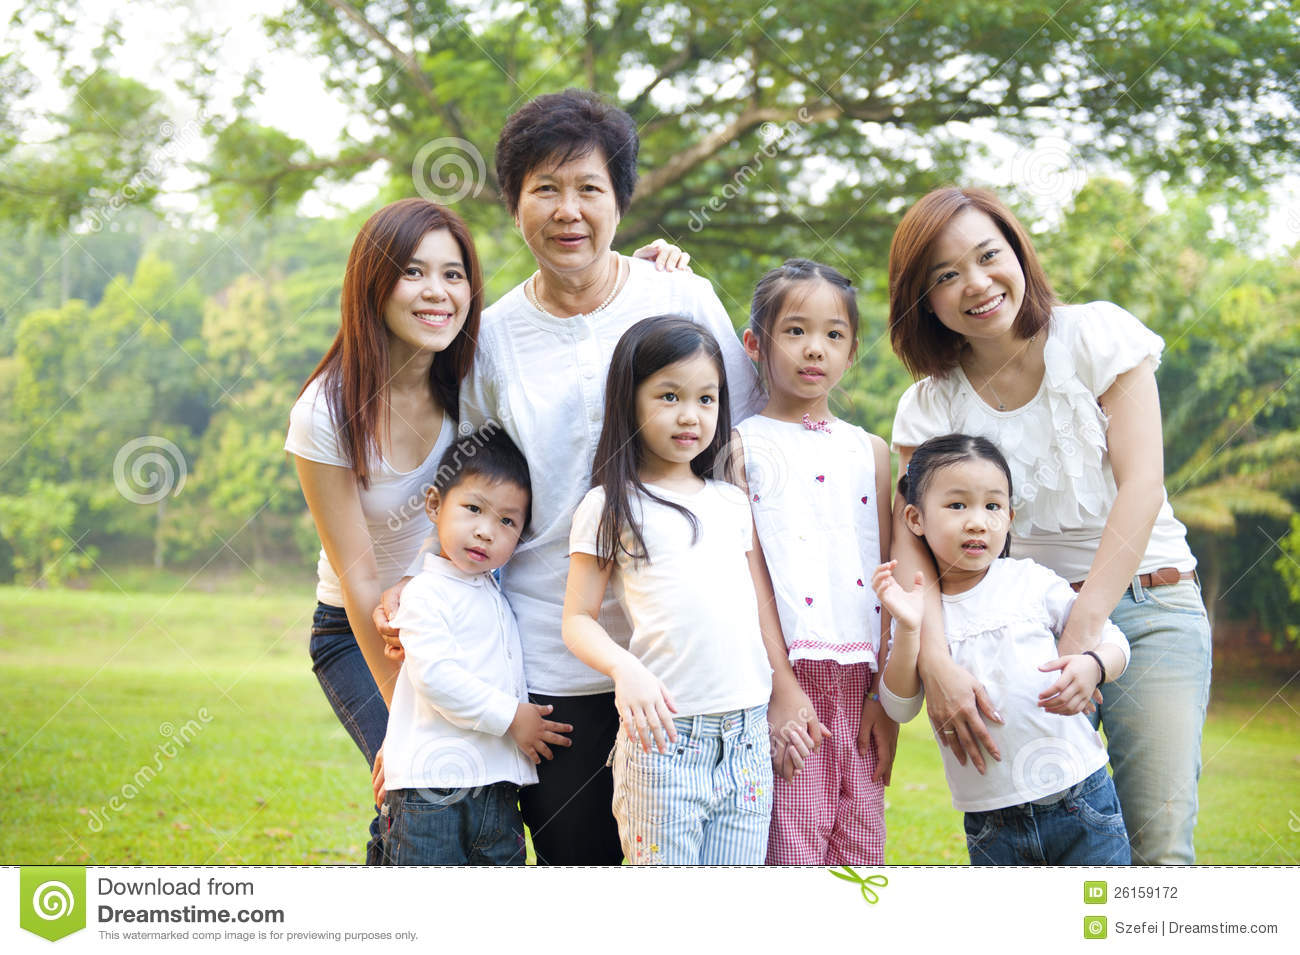 the asian family Cultural values of asian patients and families in the traditional asian family, parents define the law and the children are expected to abide by their requests and demands filial piety or respect for one's parents and elders is critically important.